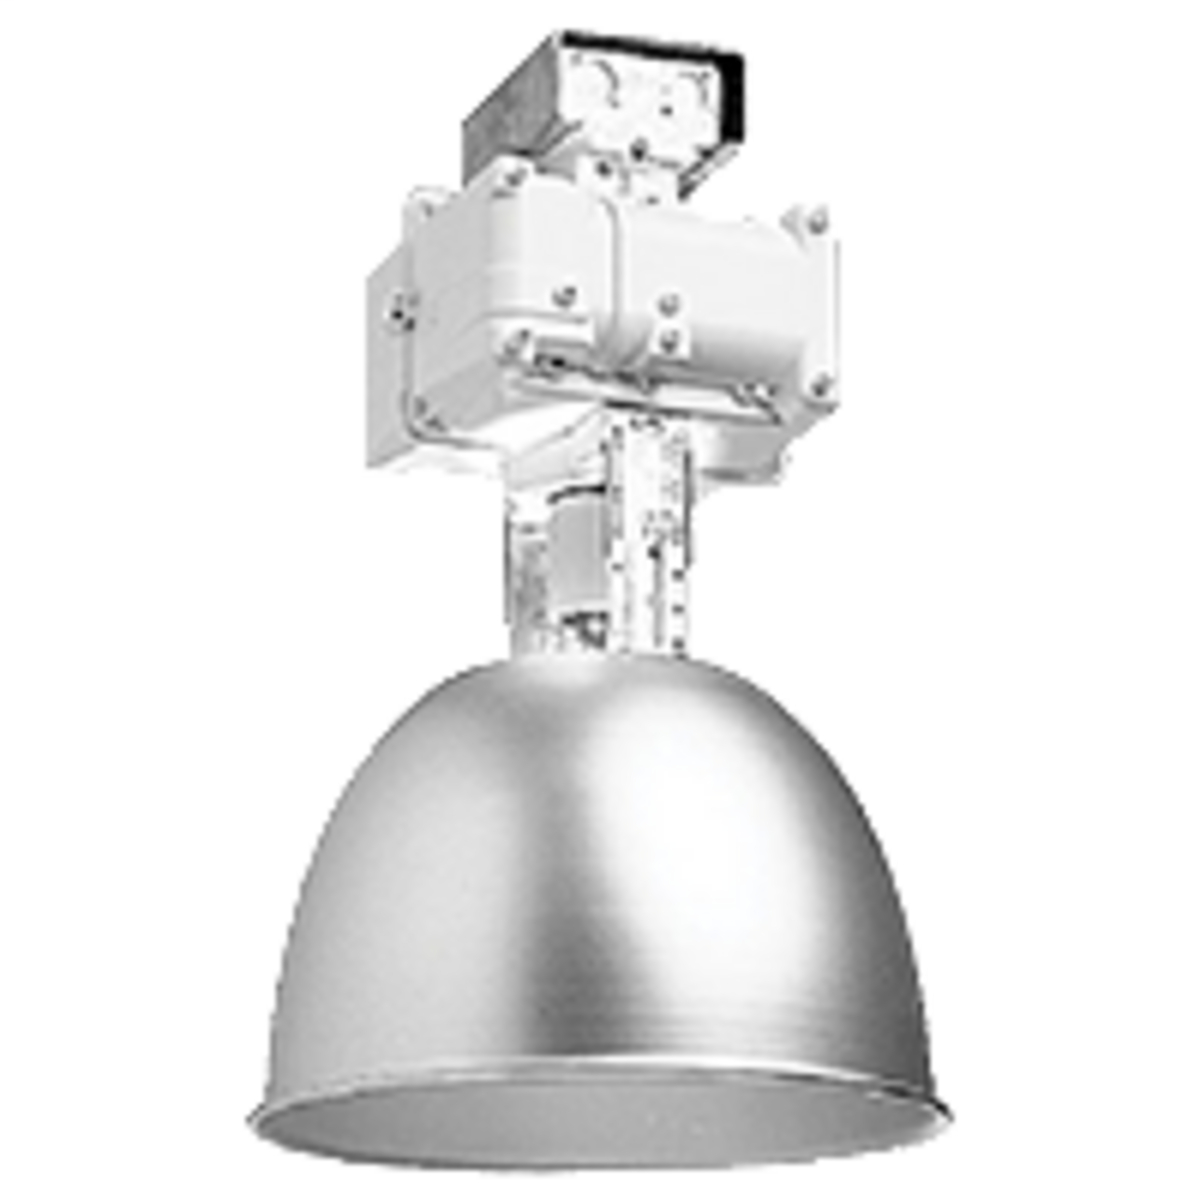 HUBBELL LIGHTING INDUSTRIAL,BL-400S8-SU-WH,BL SuperBay, Lamp Wattage: 400 W